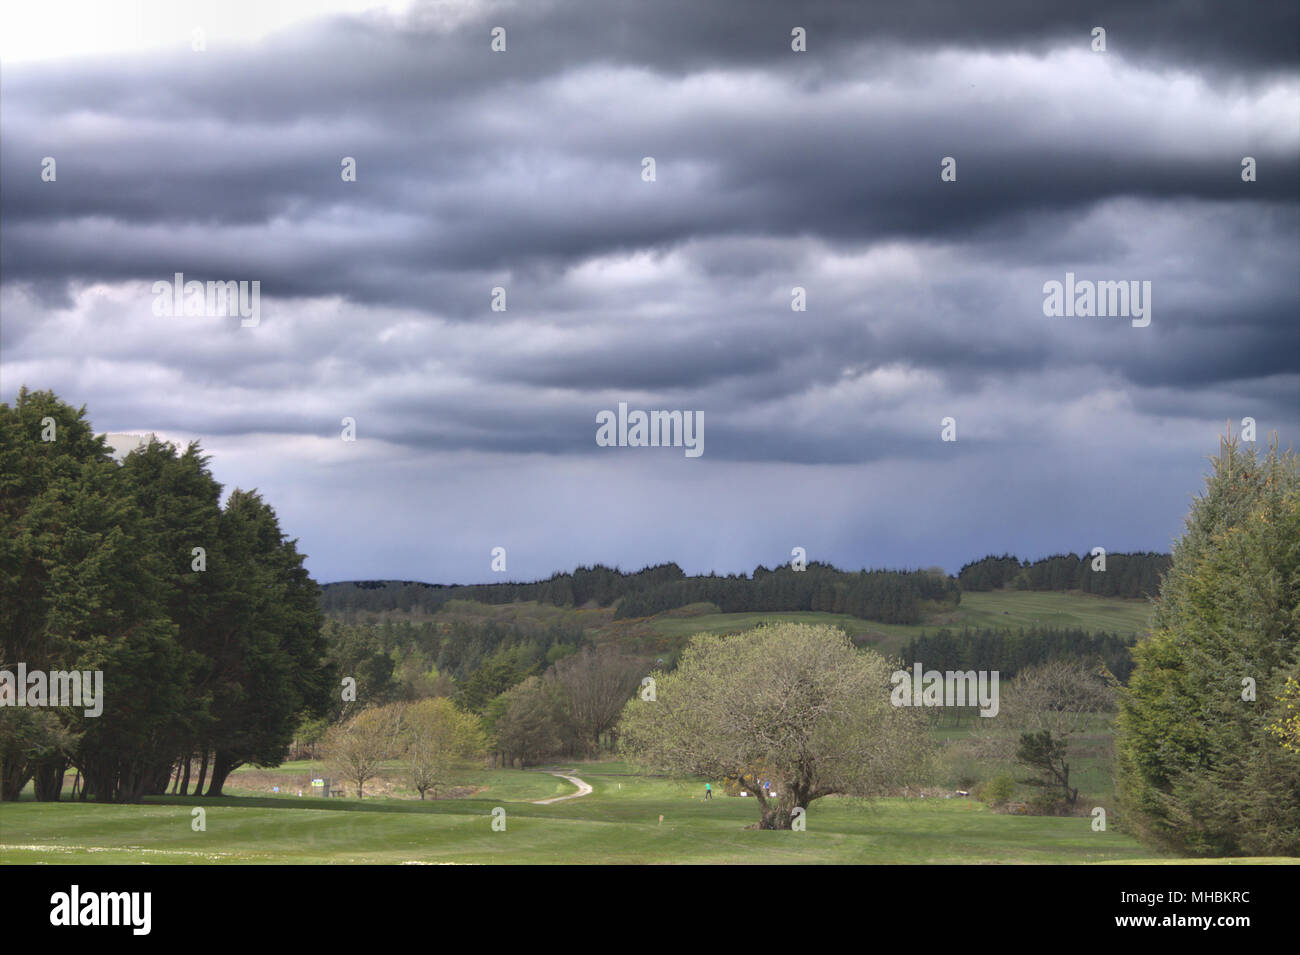 thunderstorm-clouds-gathering-over-players-out-on-a-golf-course-MHBKRC.jpg